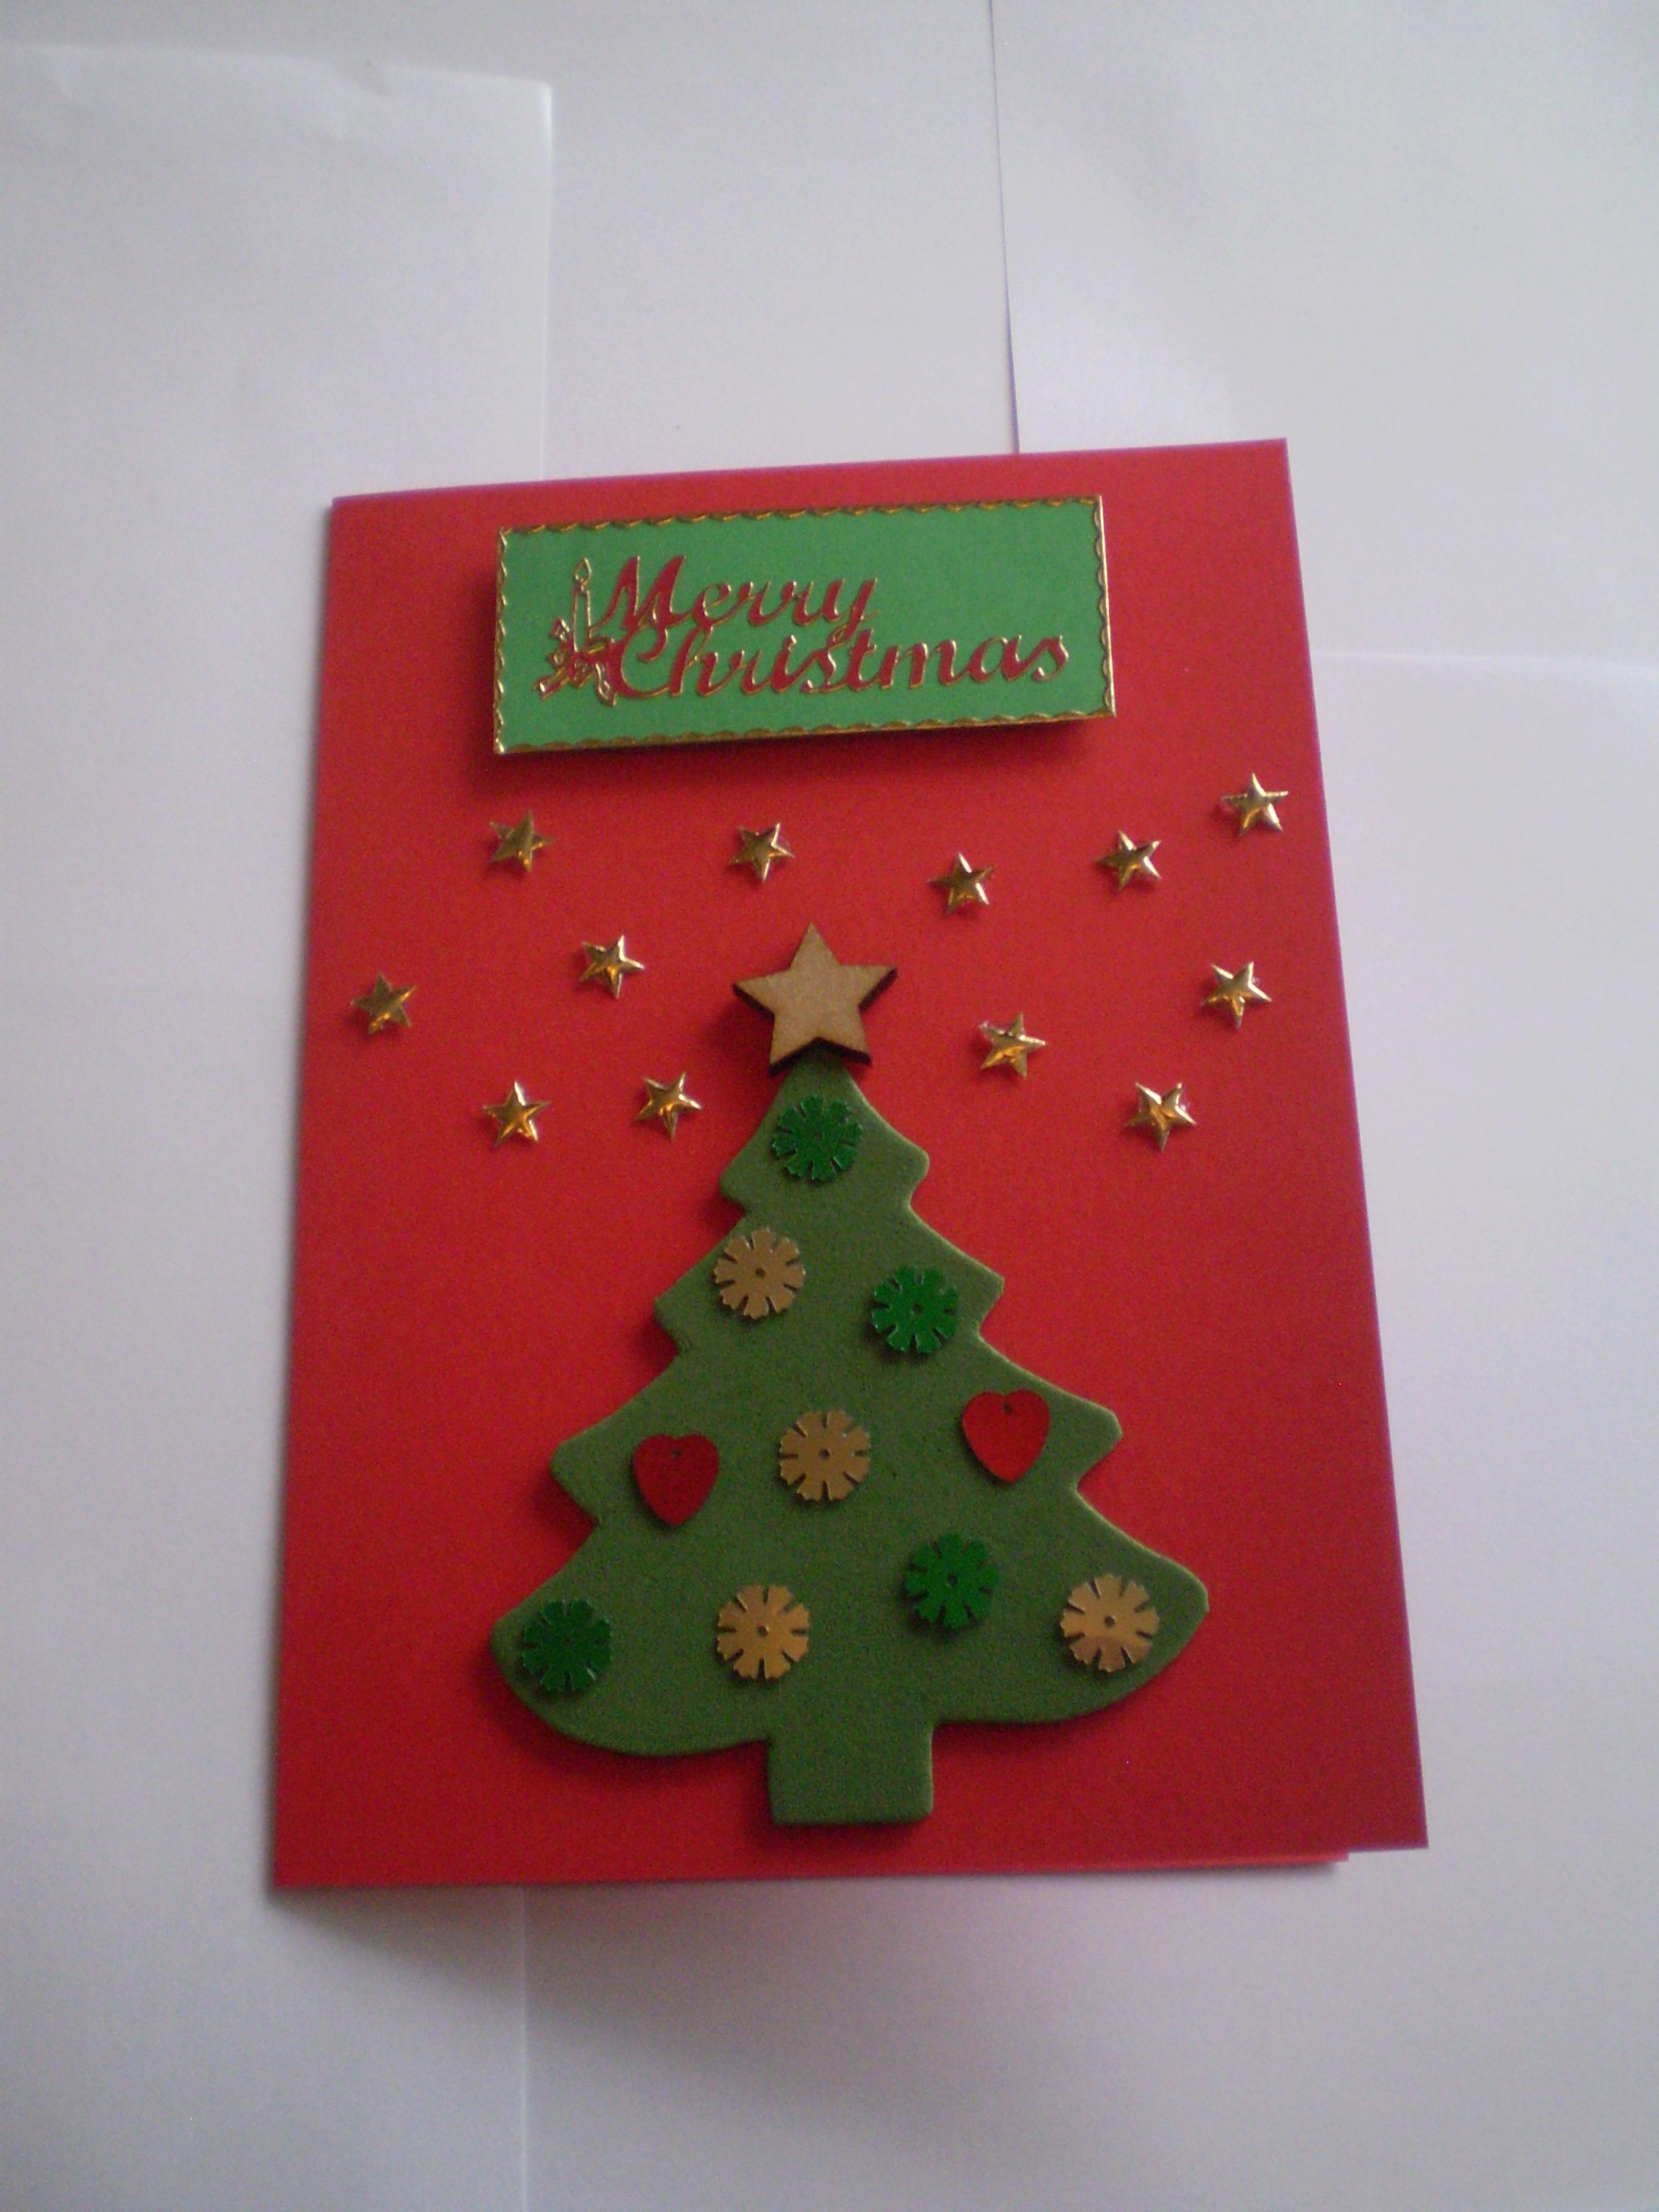 Foam Christmas Tree Card With Gold Stars And Sequins Christmas Card Craft Ideas Homemade Diy Christmas Card Crafts Diy Christmas Cards Christmas Tree Crafts